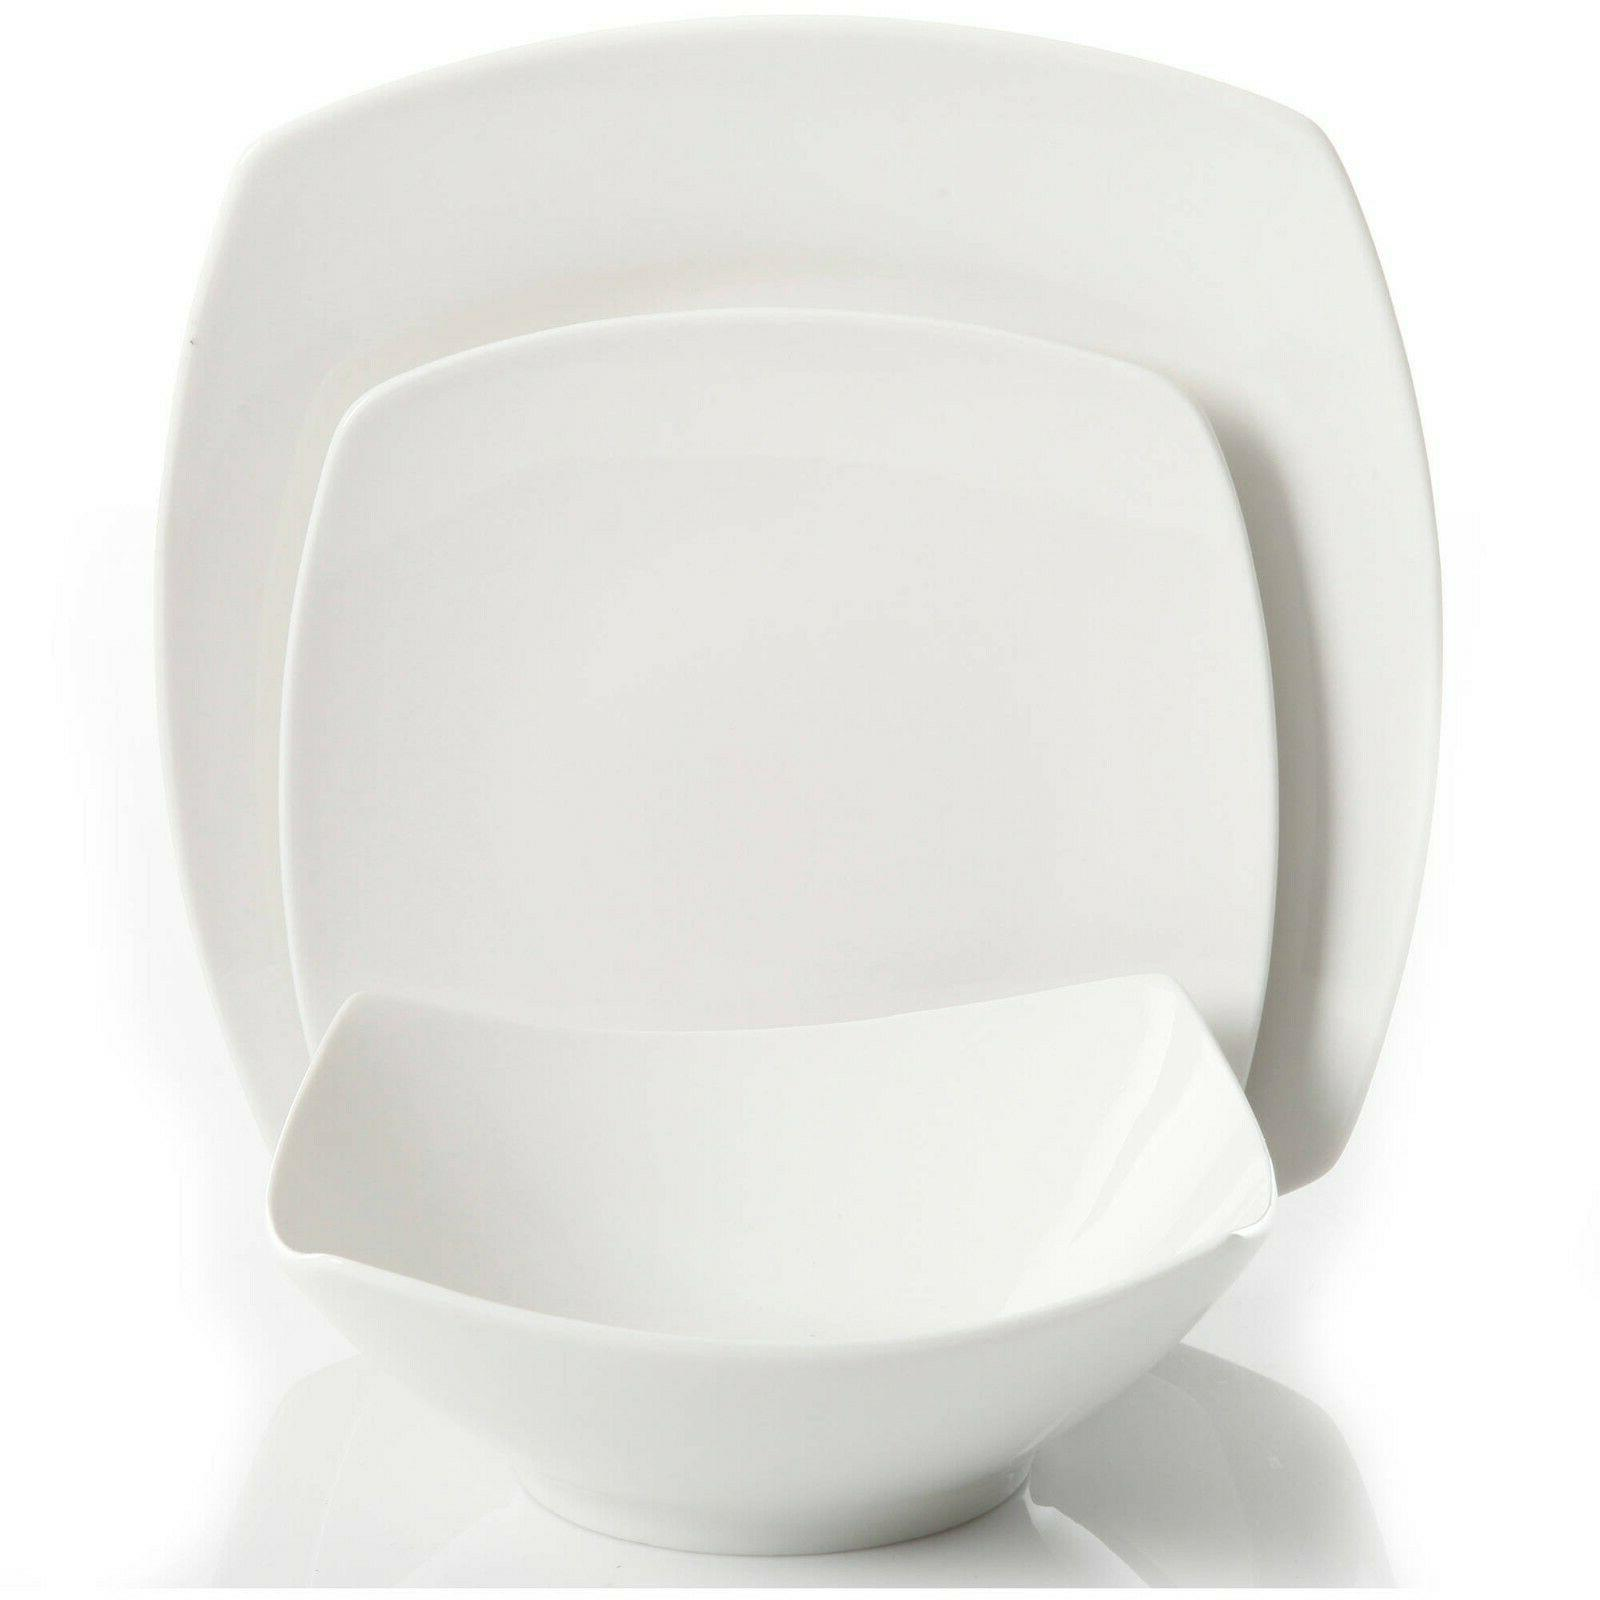 12-Piece Dinner Dessert Plates Bowls Ceramic